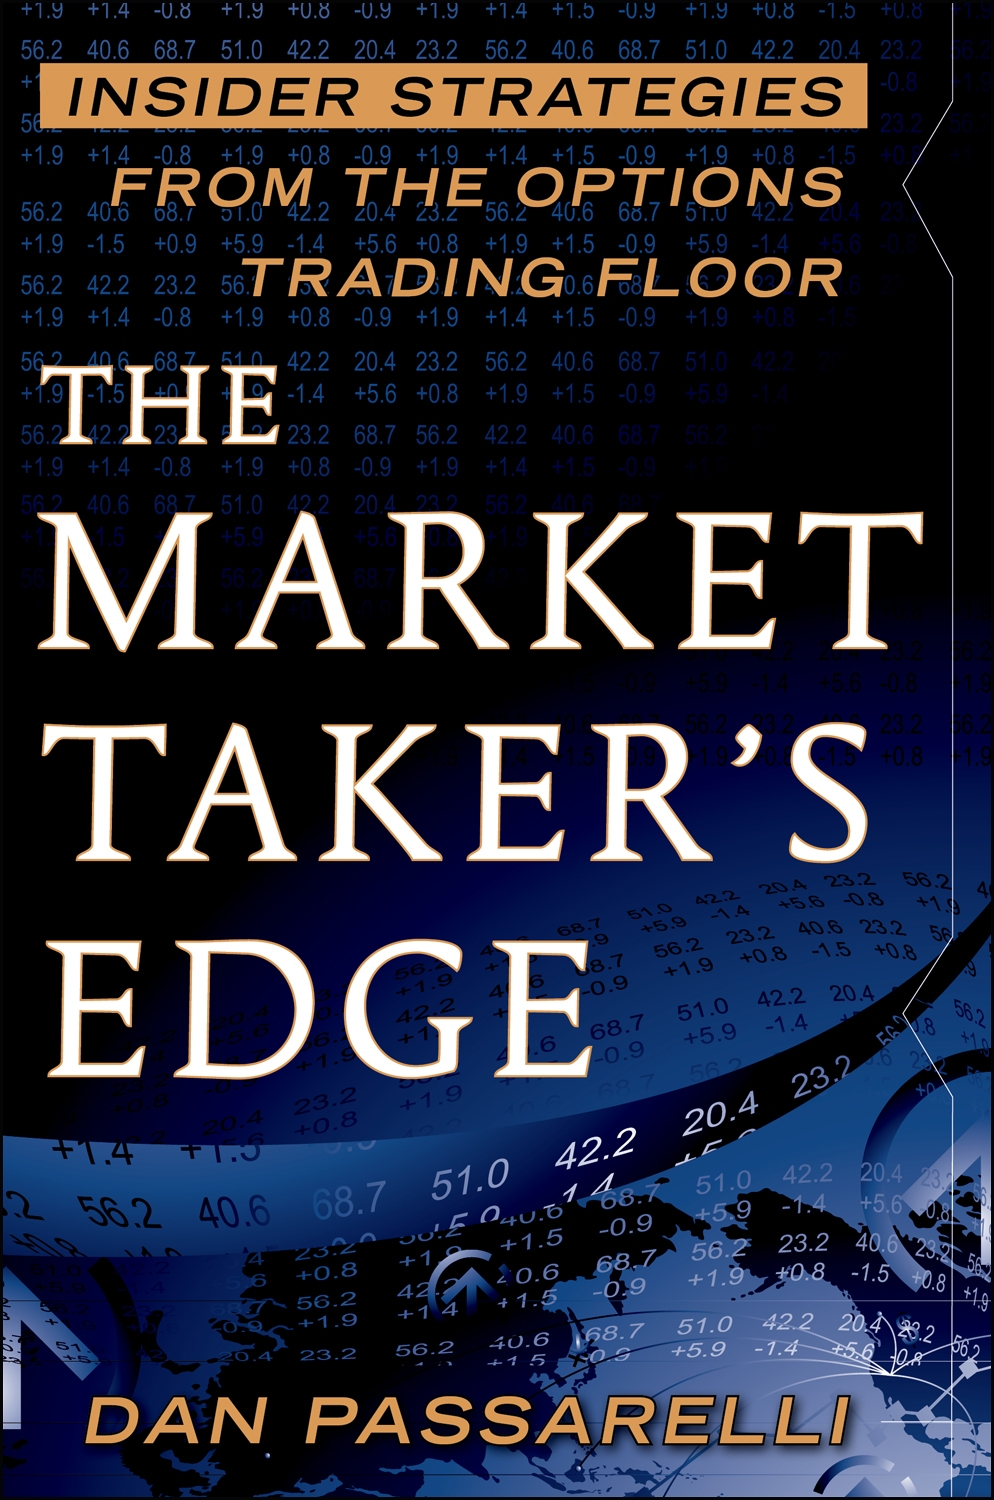 Books on stock option trading